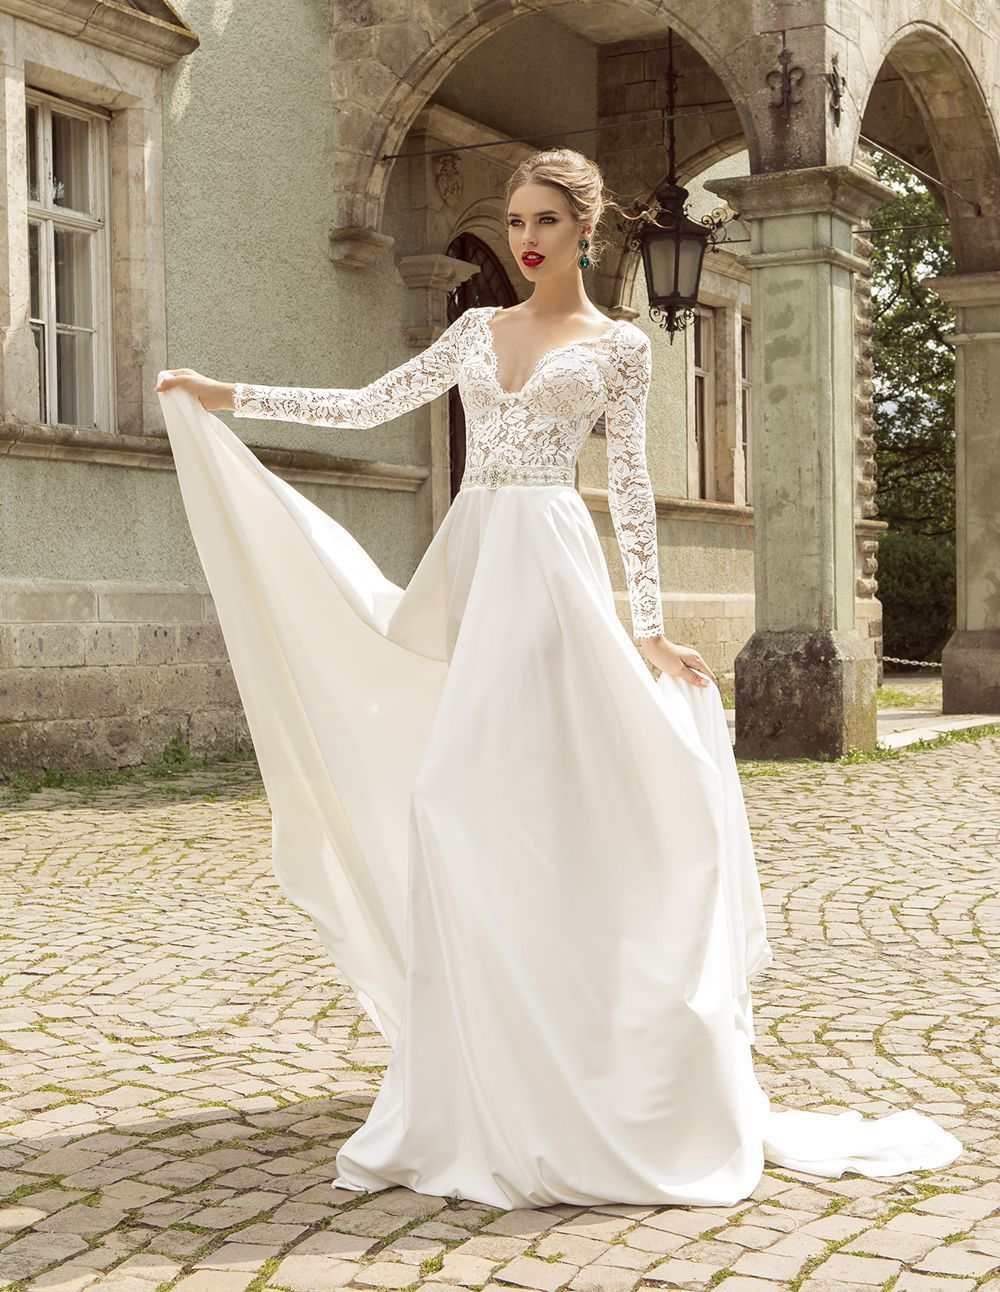 2019 Long Sleeved Lace Wedding Dress - Plus Size Dresses for Wedding ...